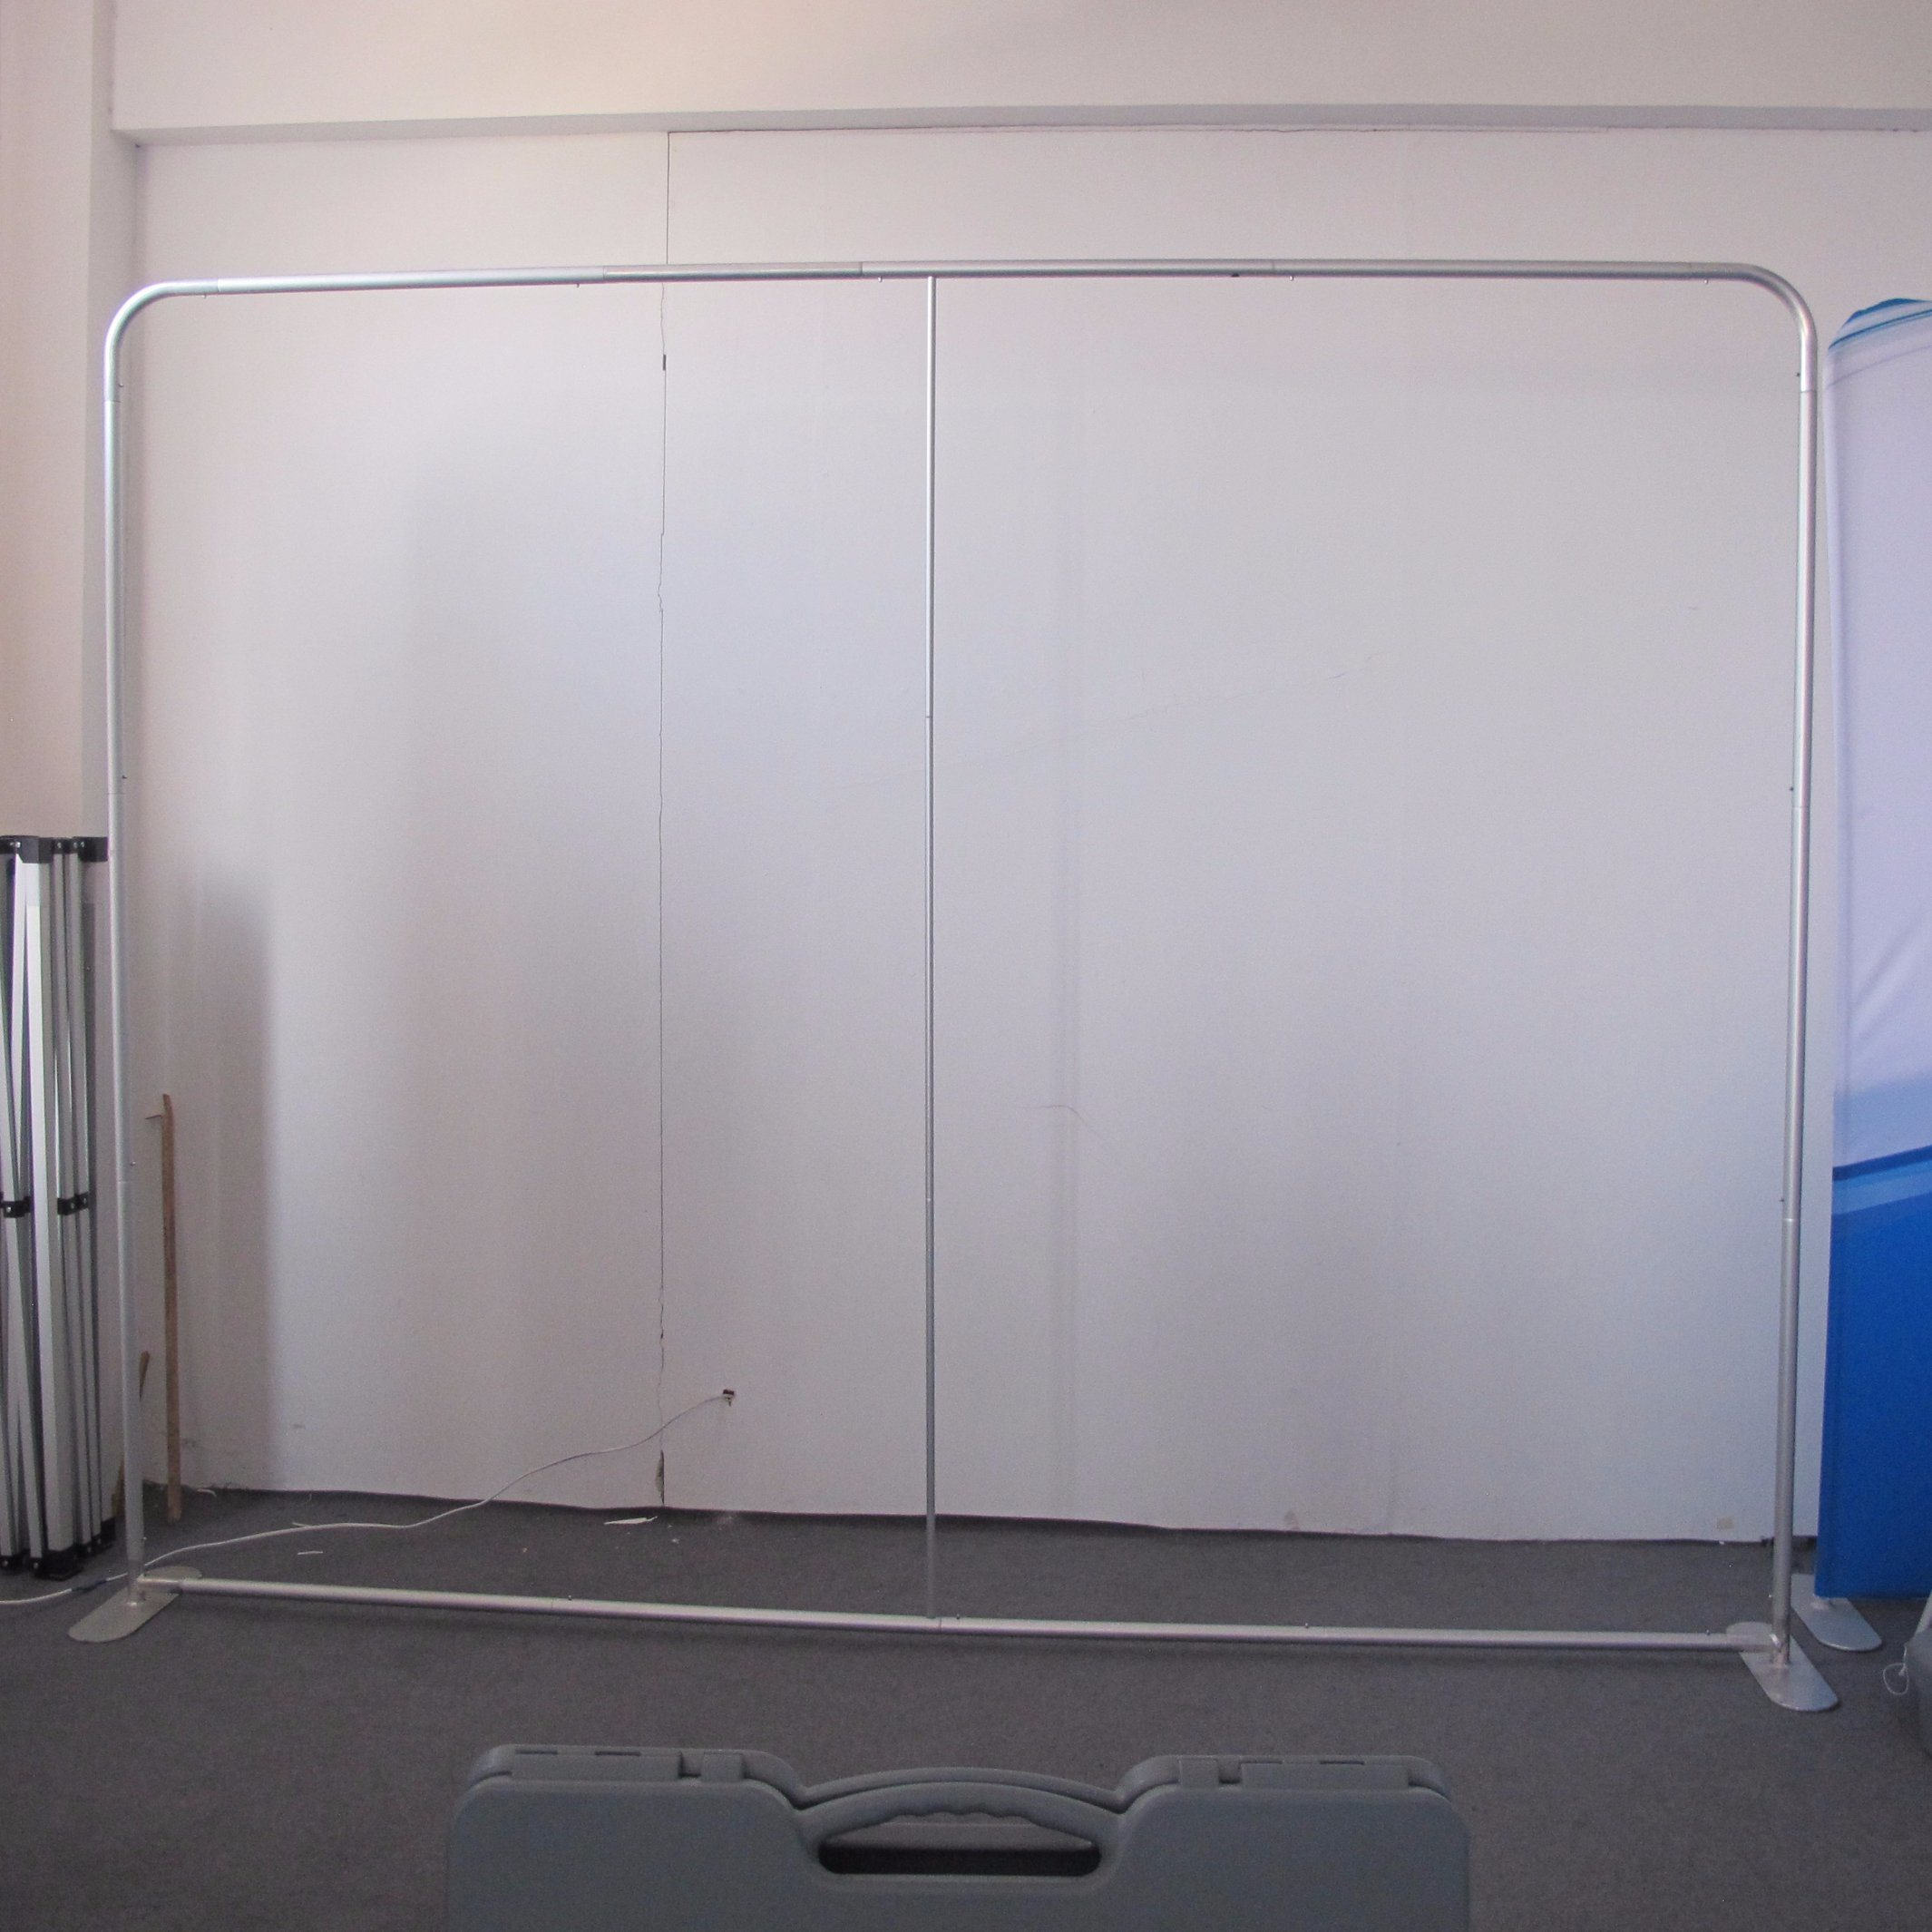 Tension Fabric Pop Displays for Event